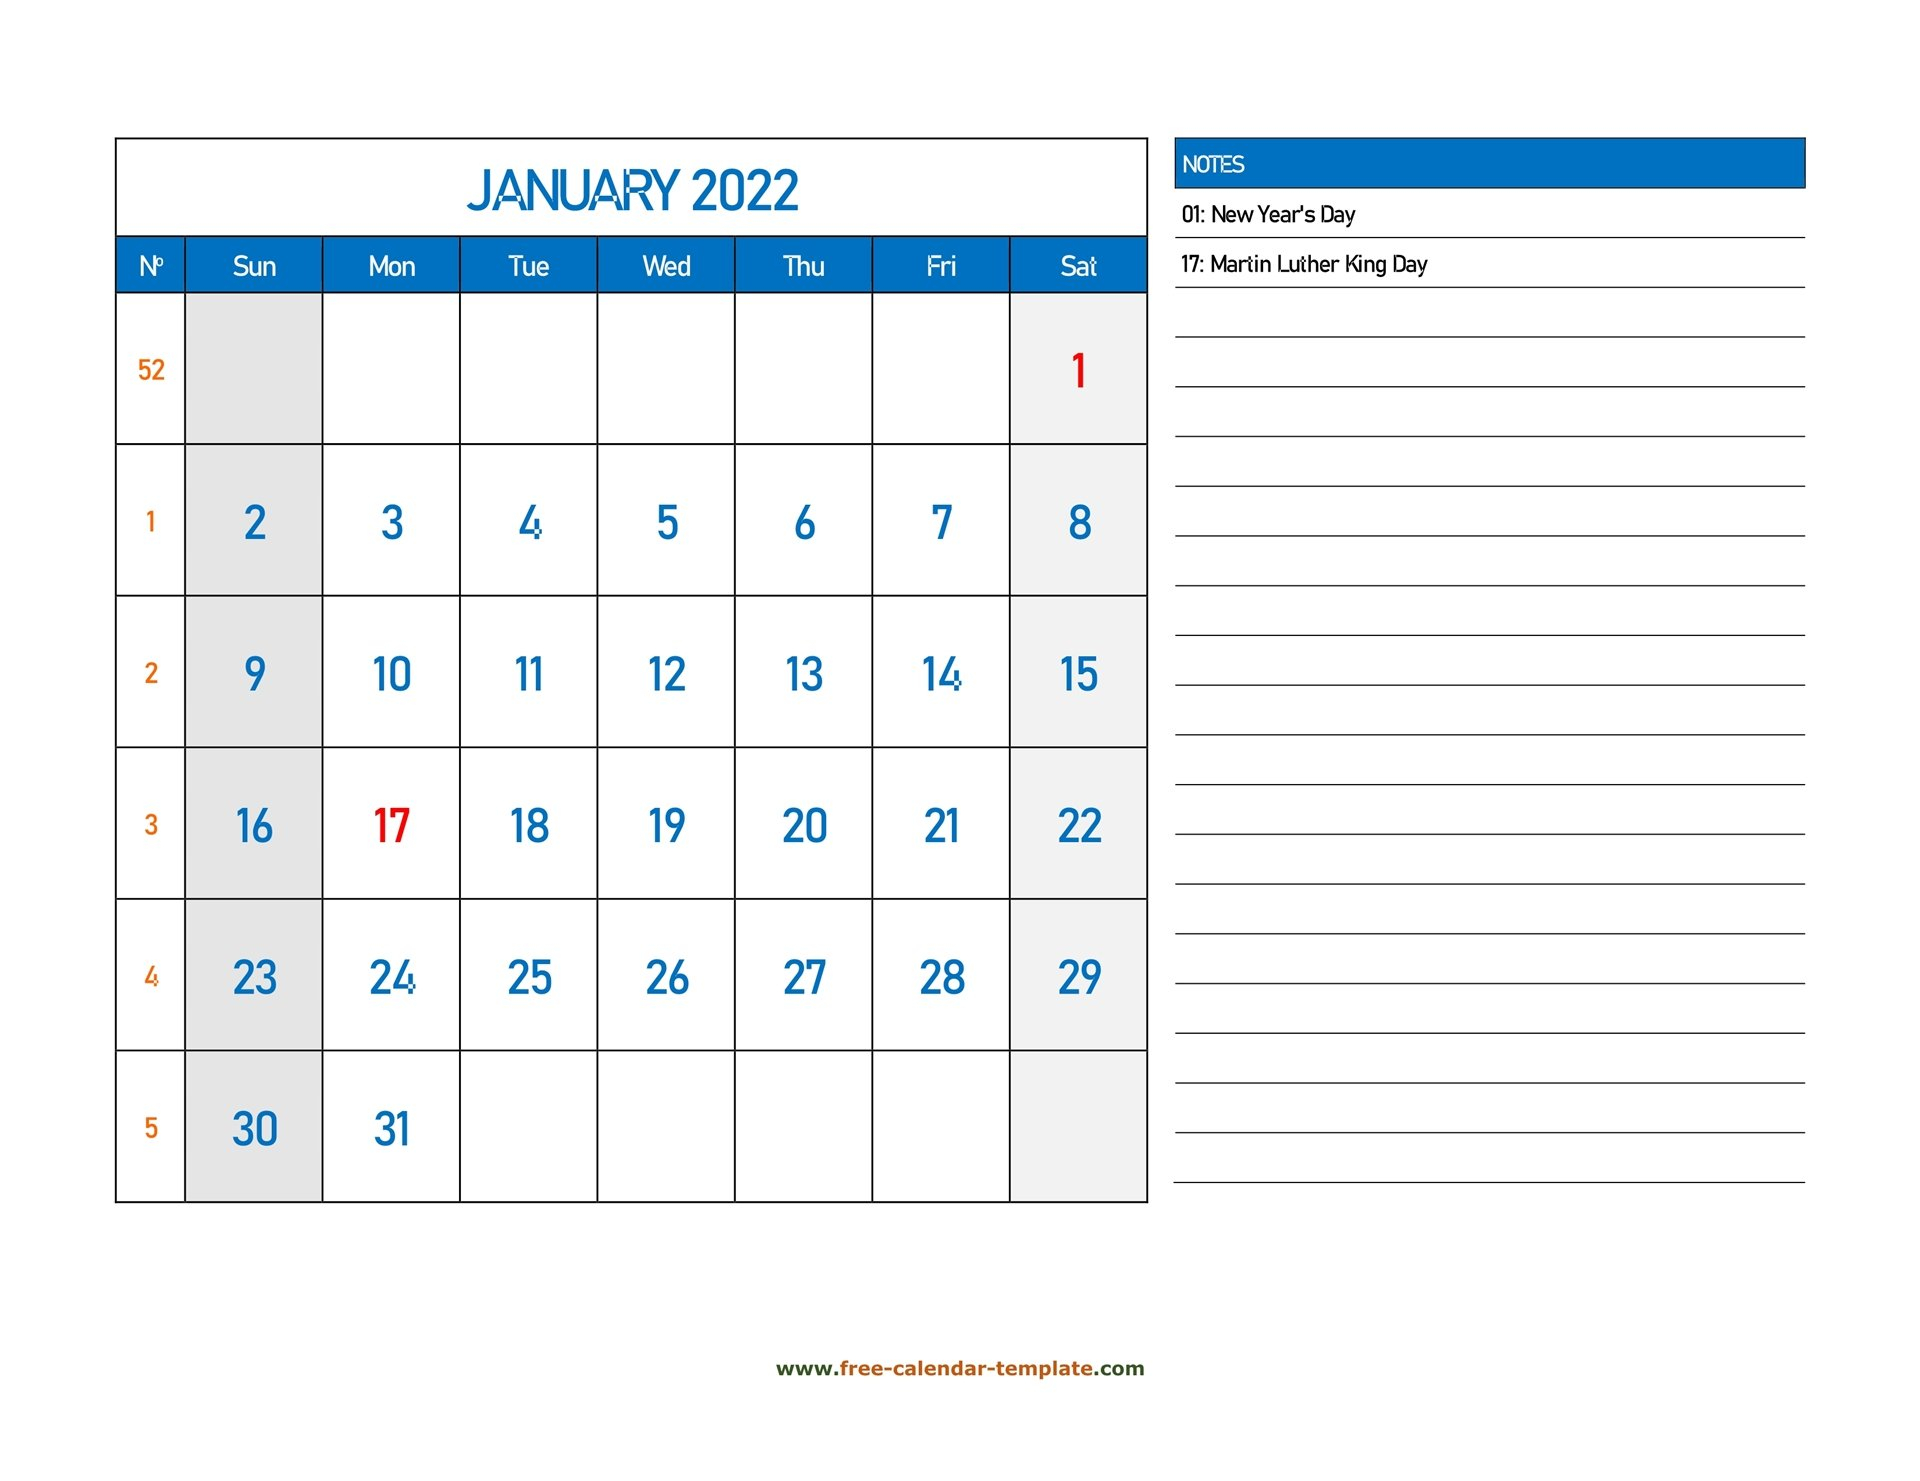 January Calendar 2022 Grid Lines For Holidays And Notes with Printable Calendar January 2022 Floral Image